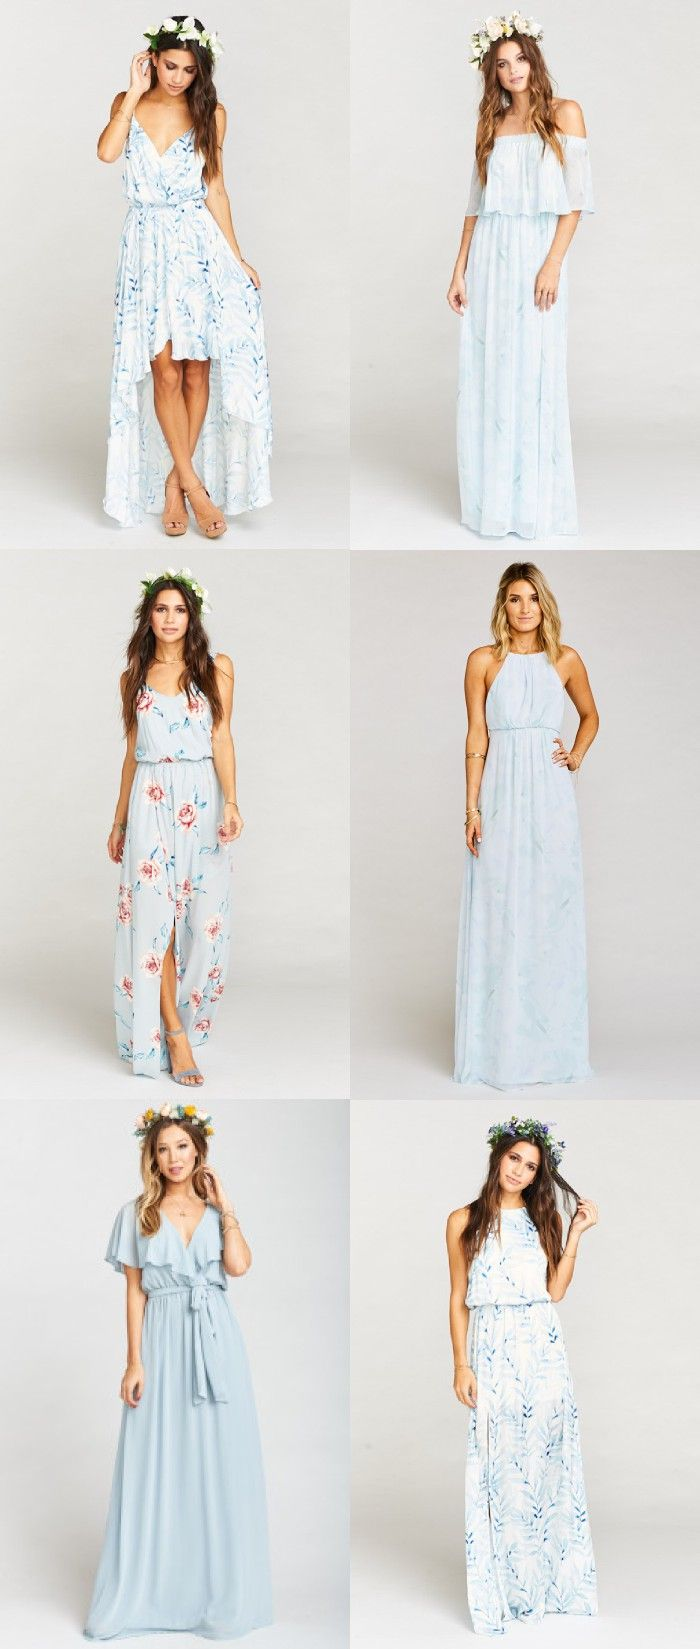 Light Blue Mix and Match Bridesmaid Dresses | Selbstgemachte ...